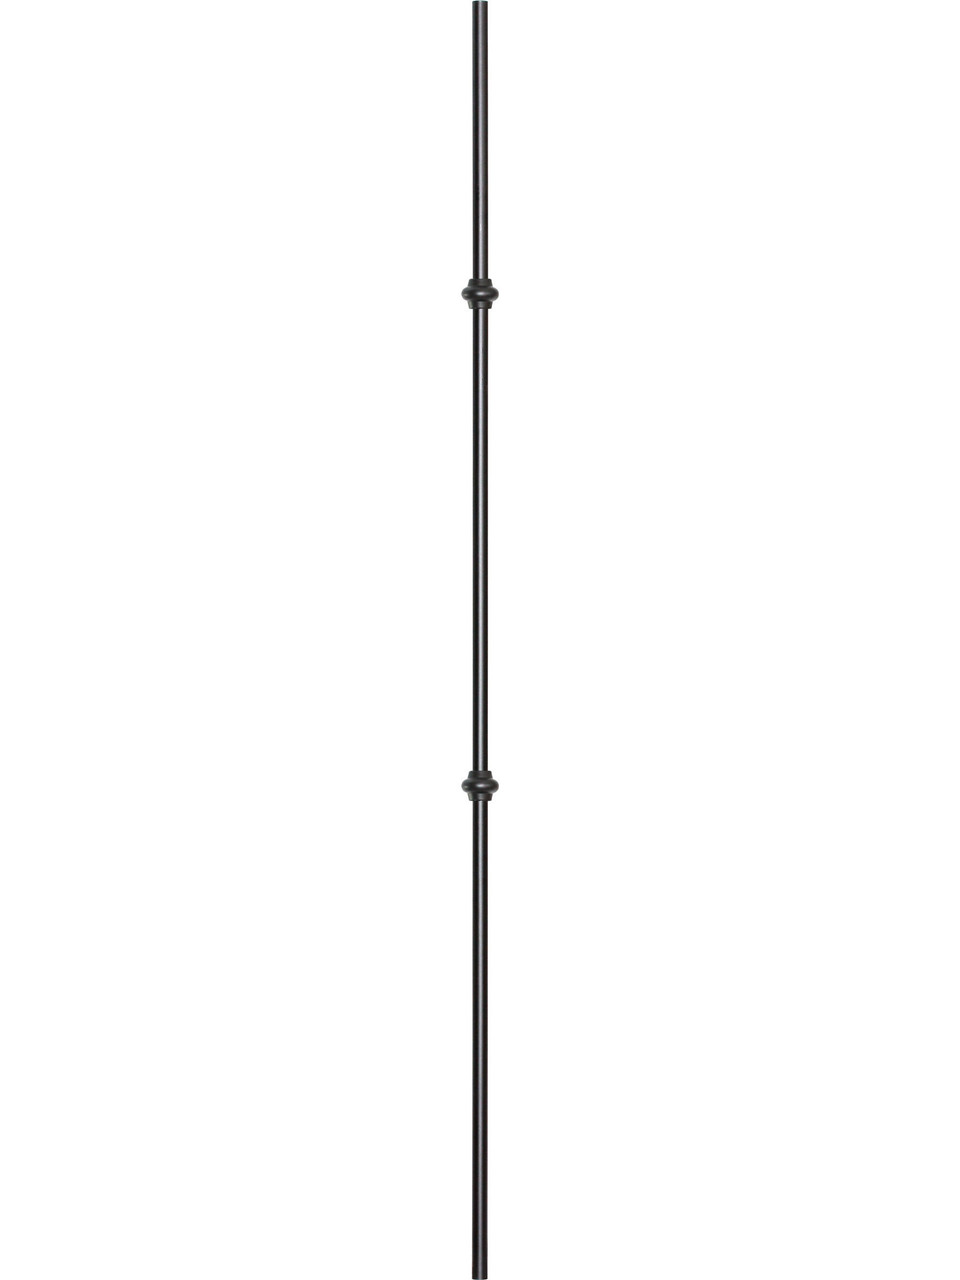 """FIH5580-44 9/16"""" Round Tube Baluster Double Knuckles"""